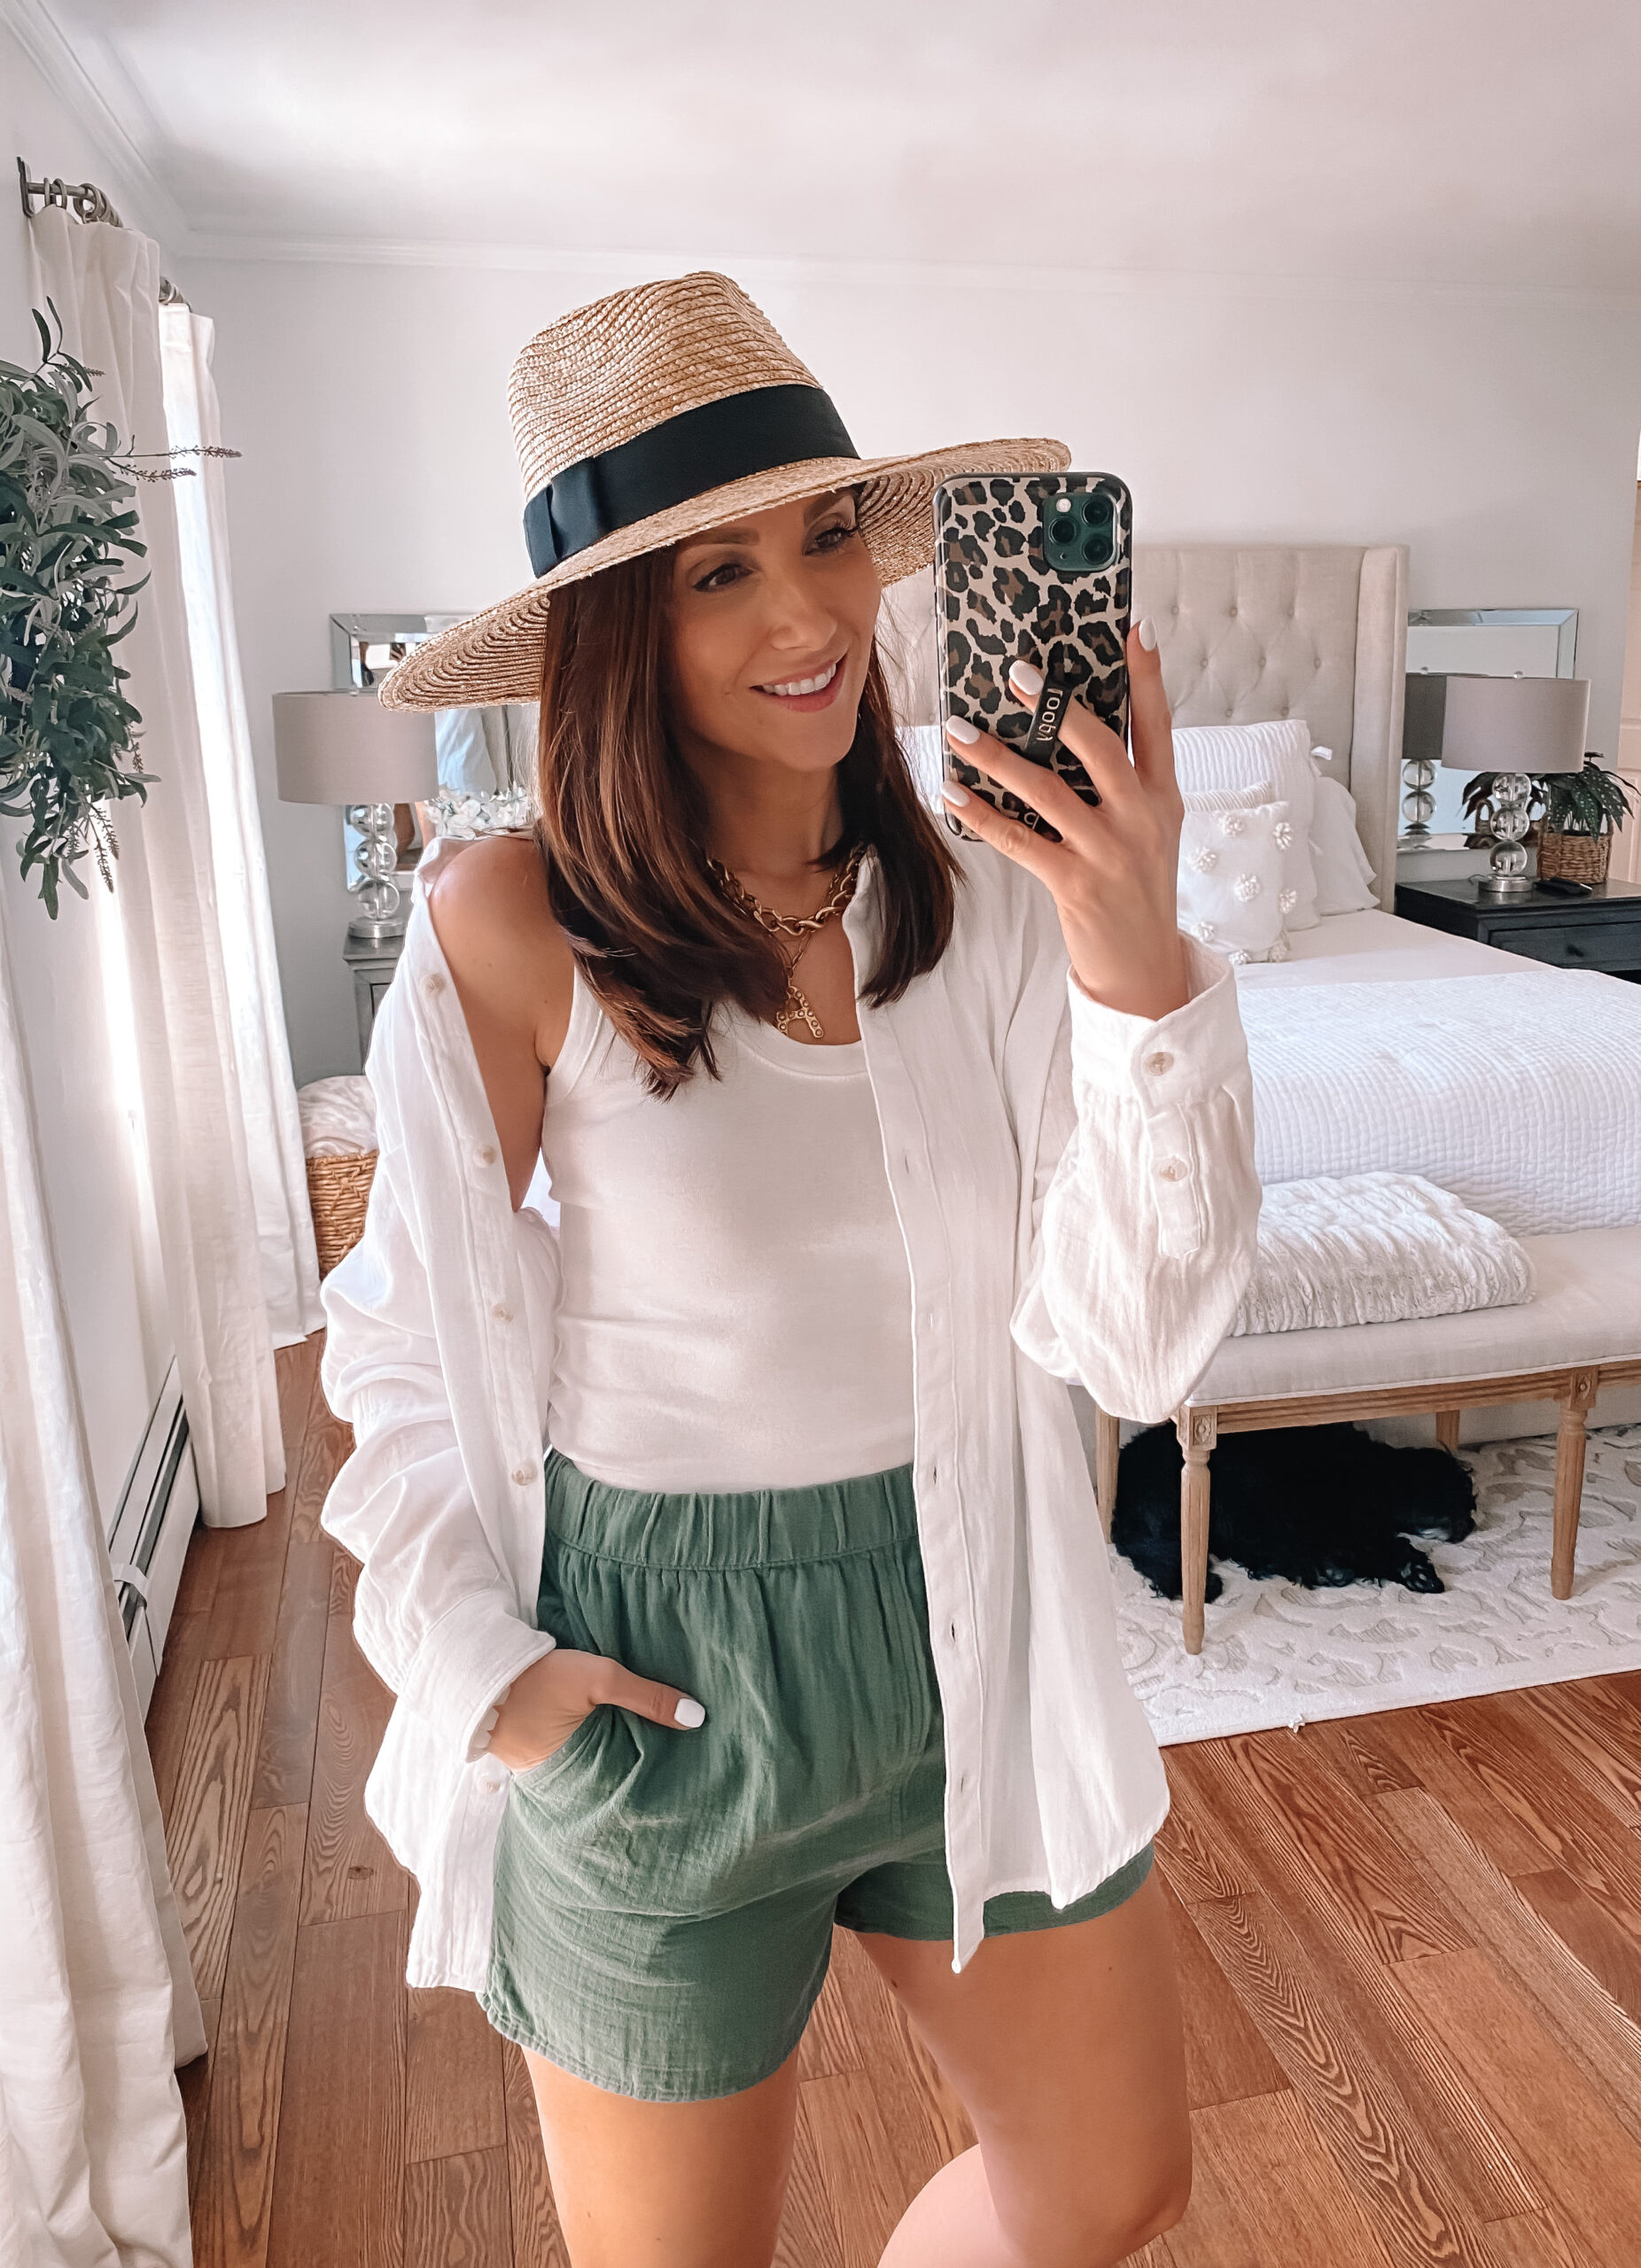 target green shorts, target summer outfit